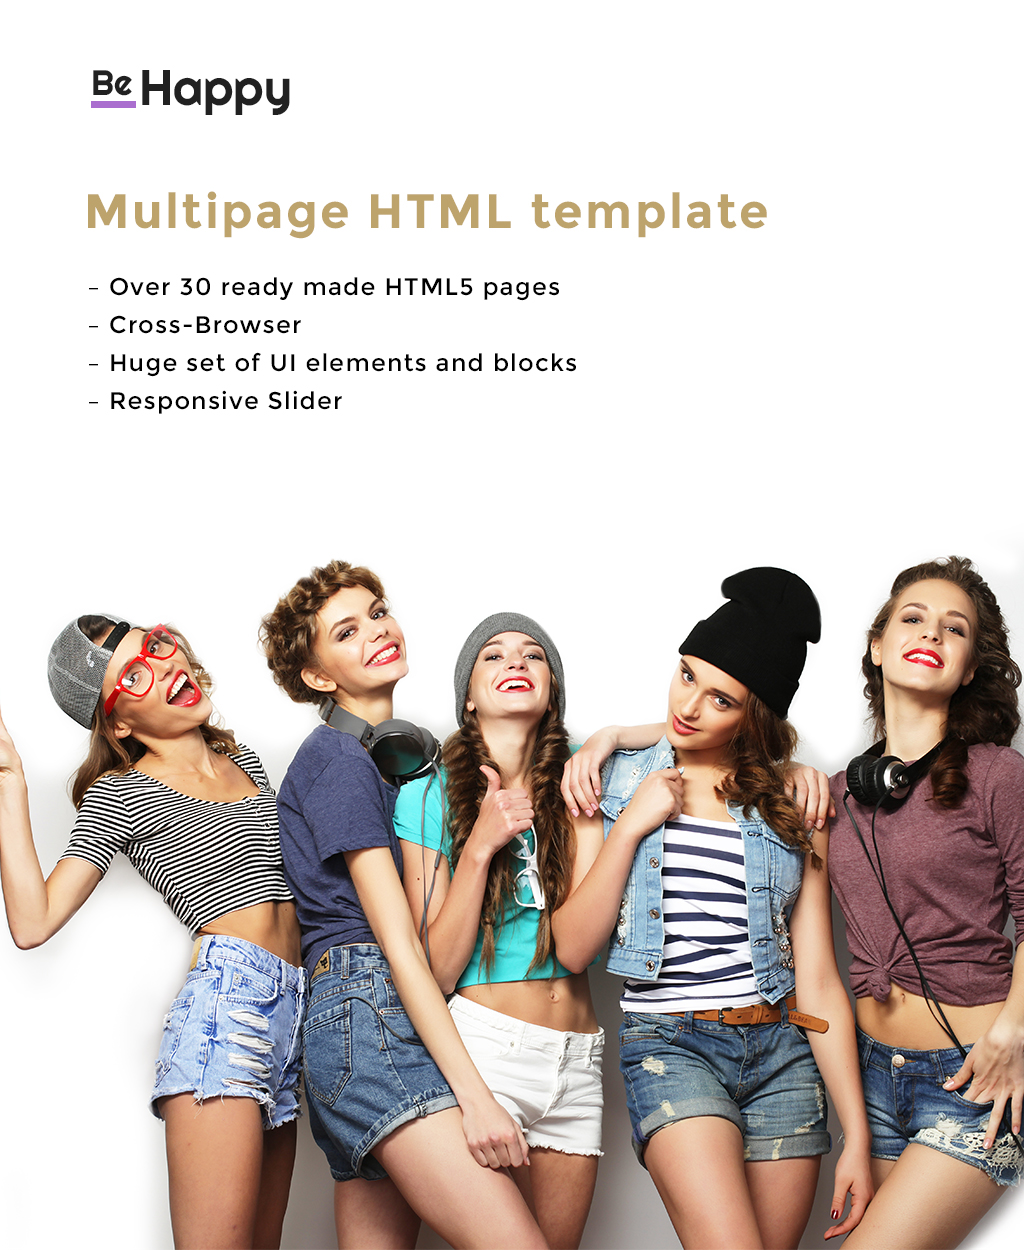 Be Happy - Health Magazine Multipage Website Template